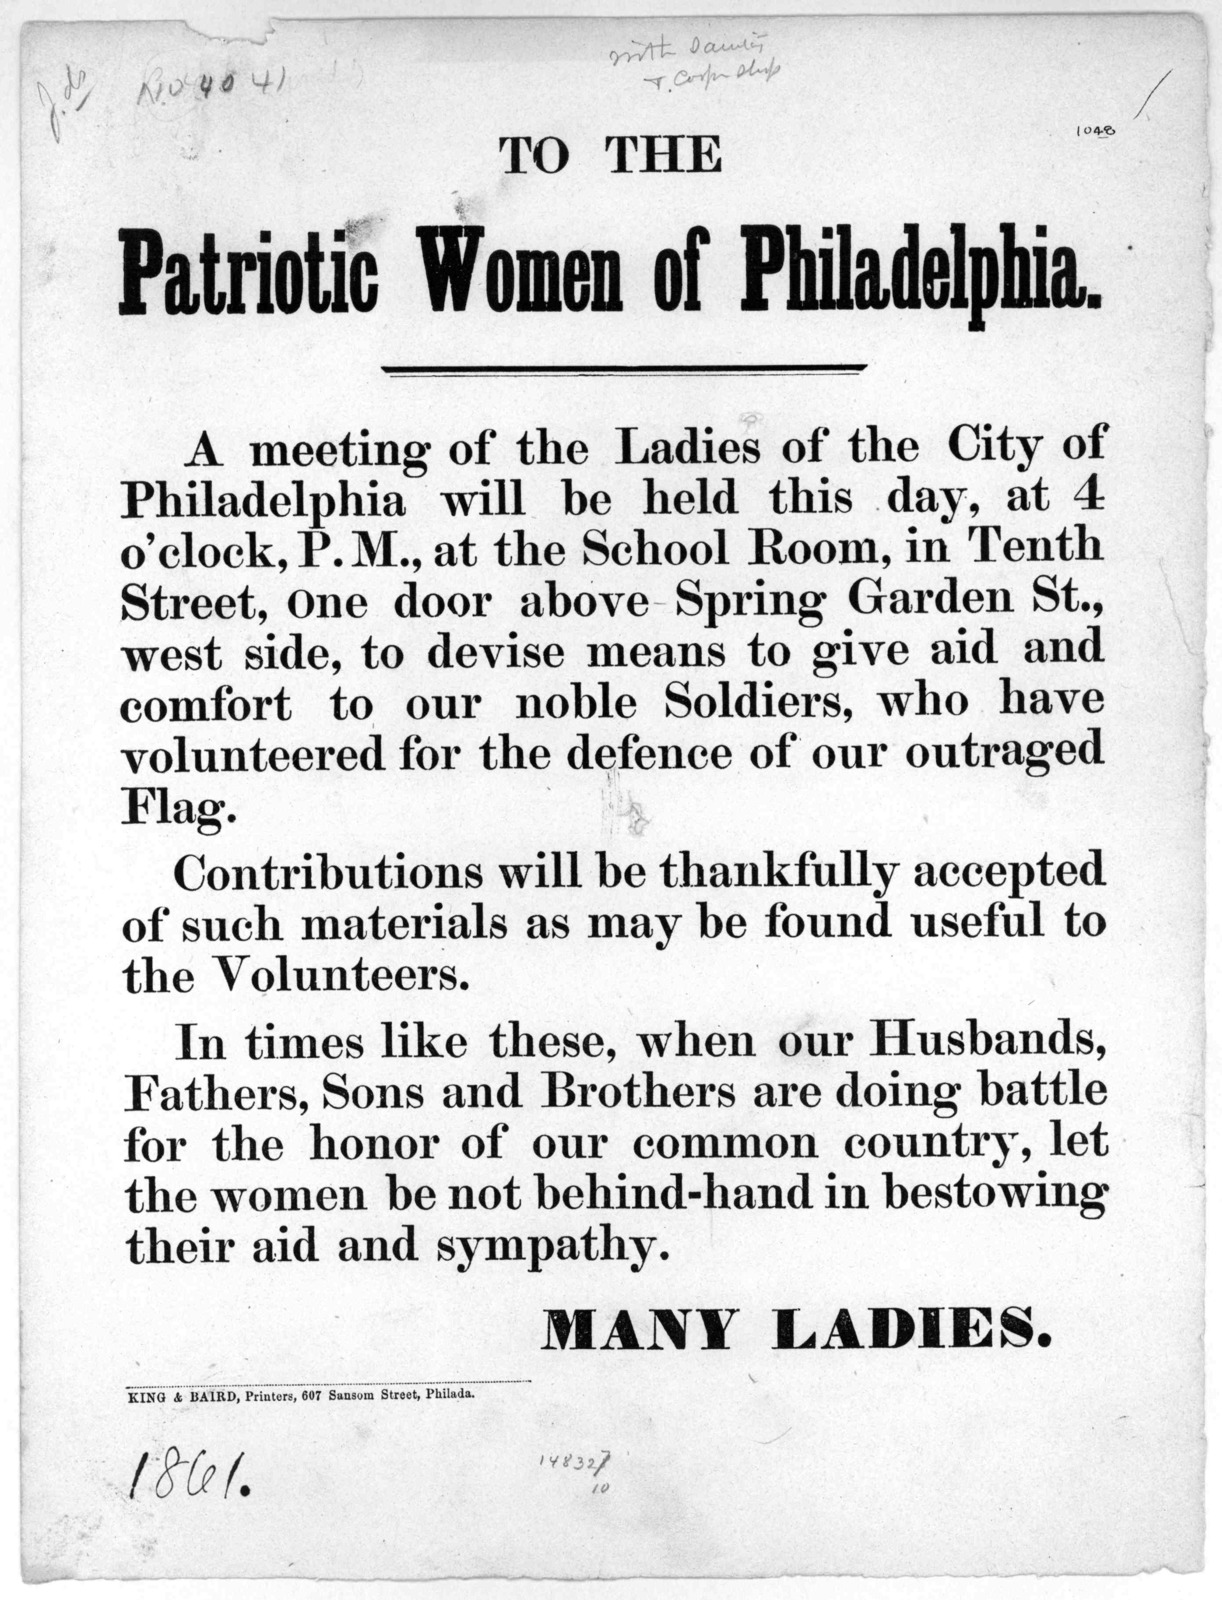 To the patriotic women of Philadelphia. A meeting of the ladies of the City of Philadelphia will be held this day, at 4 o'clock, P. M., at the School Room, in Tenth Street ... to devise means to give aid and comfort to our noble soldiers ... [Si